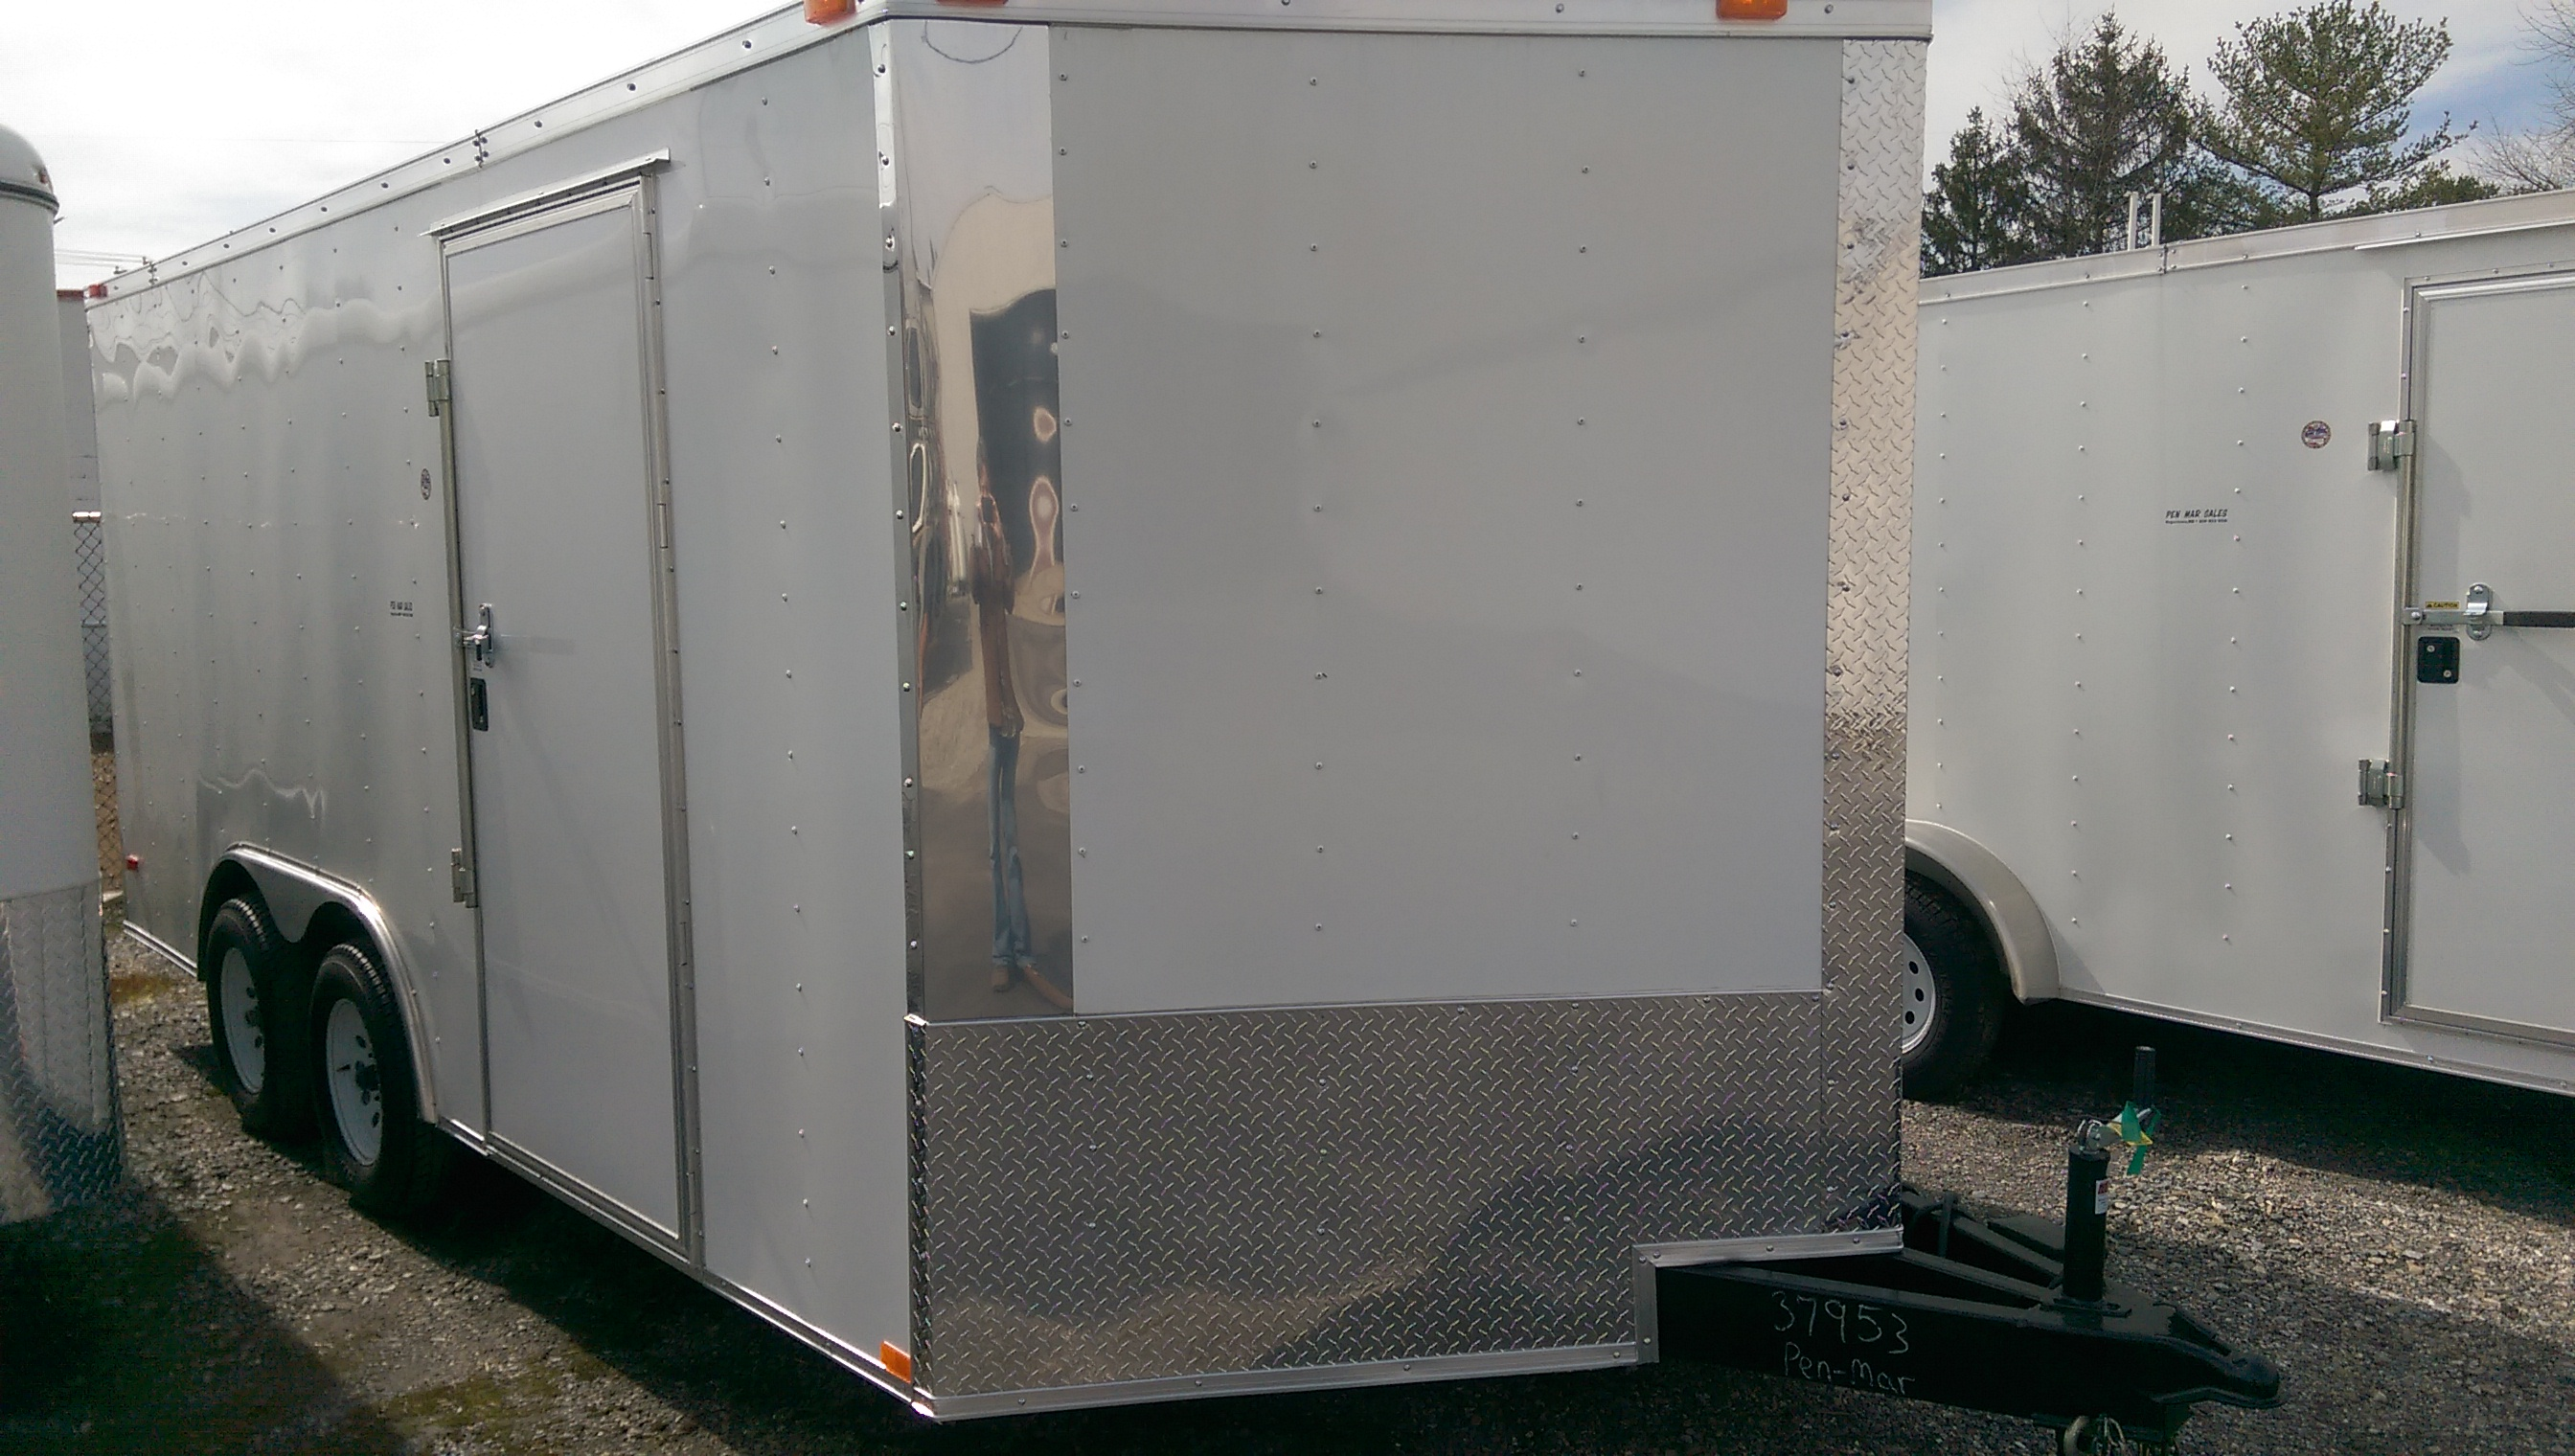 "Quantity: 1  Ramp Rear Door V-Nose Plywood Flooring 32"" Side Door Flush Lock and Bar Lock on Side Door Rock Guard Interior Height  - 75"" (3"" Extra Height) Aluminum Exterior 7-Way Plug  <strong>Cash Price: $5,100</strong>  *Full Purchase Price does not include Title Fees and Taxes *3% Credit Card Surcharge added to Credit Card Purchases  	Financing not available on Freedom Trailers"